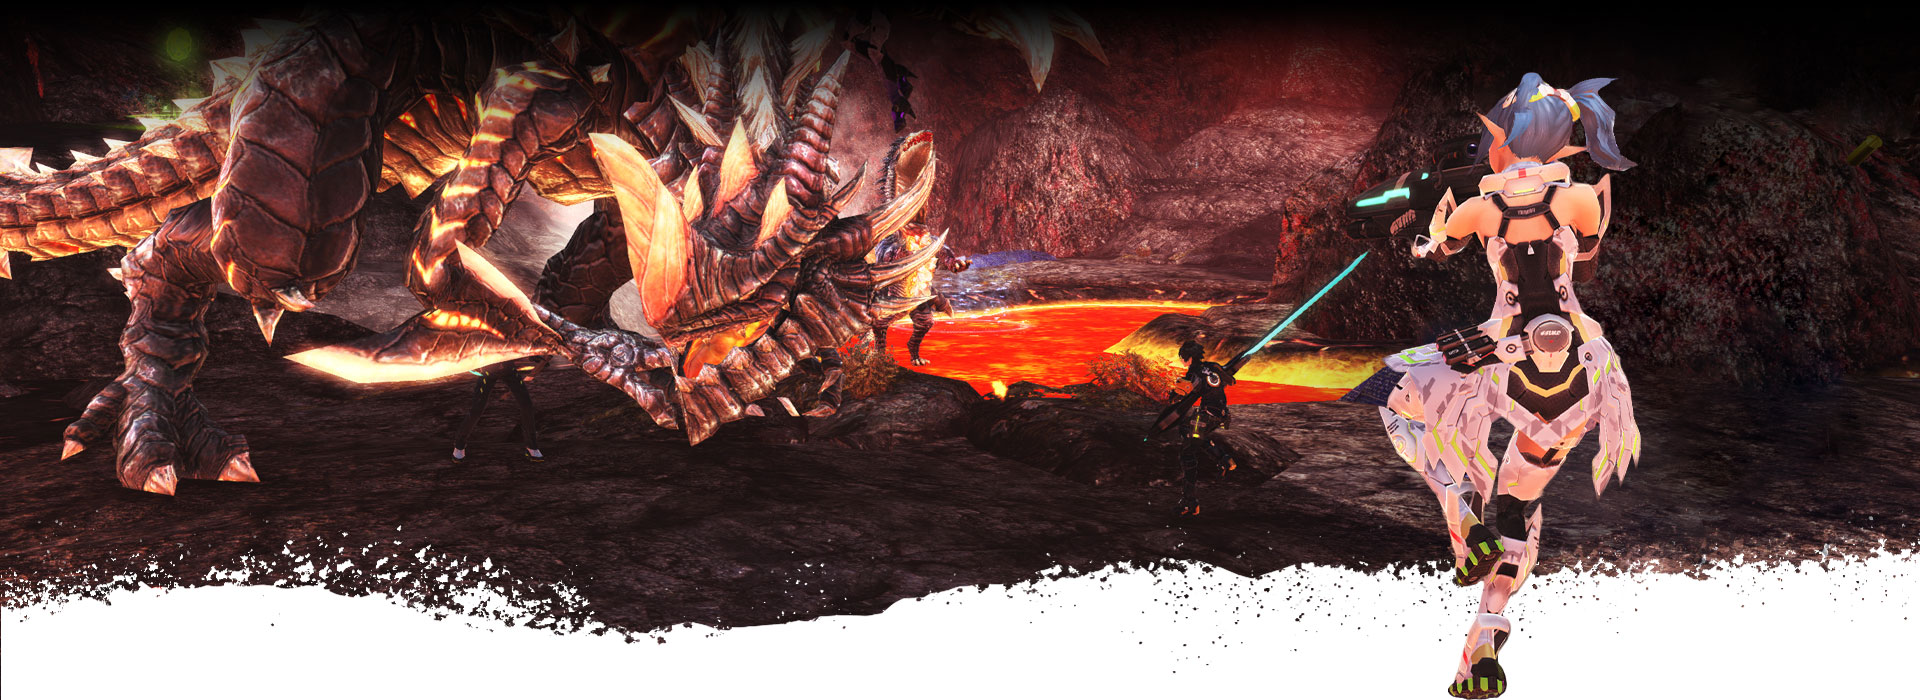 Characters run towards a giant dragon monster with their weapons drawn.